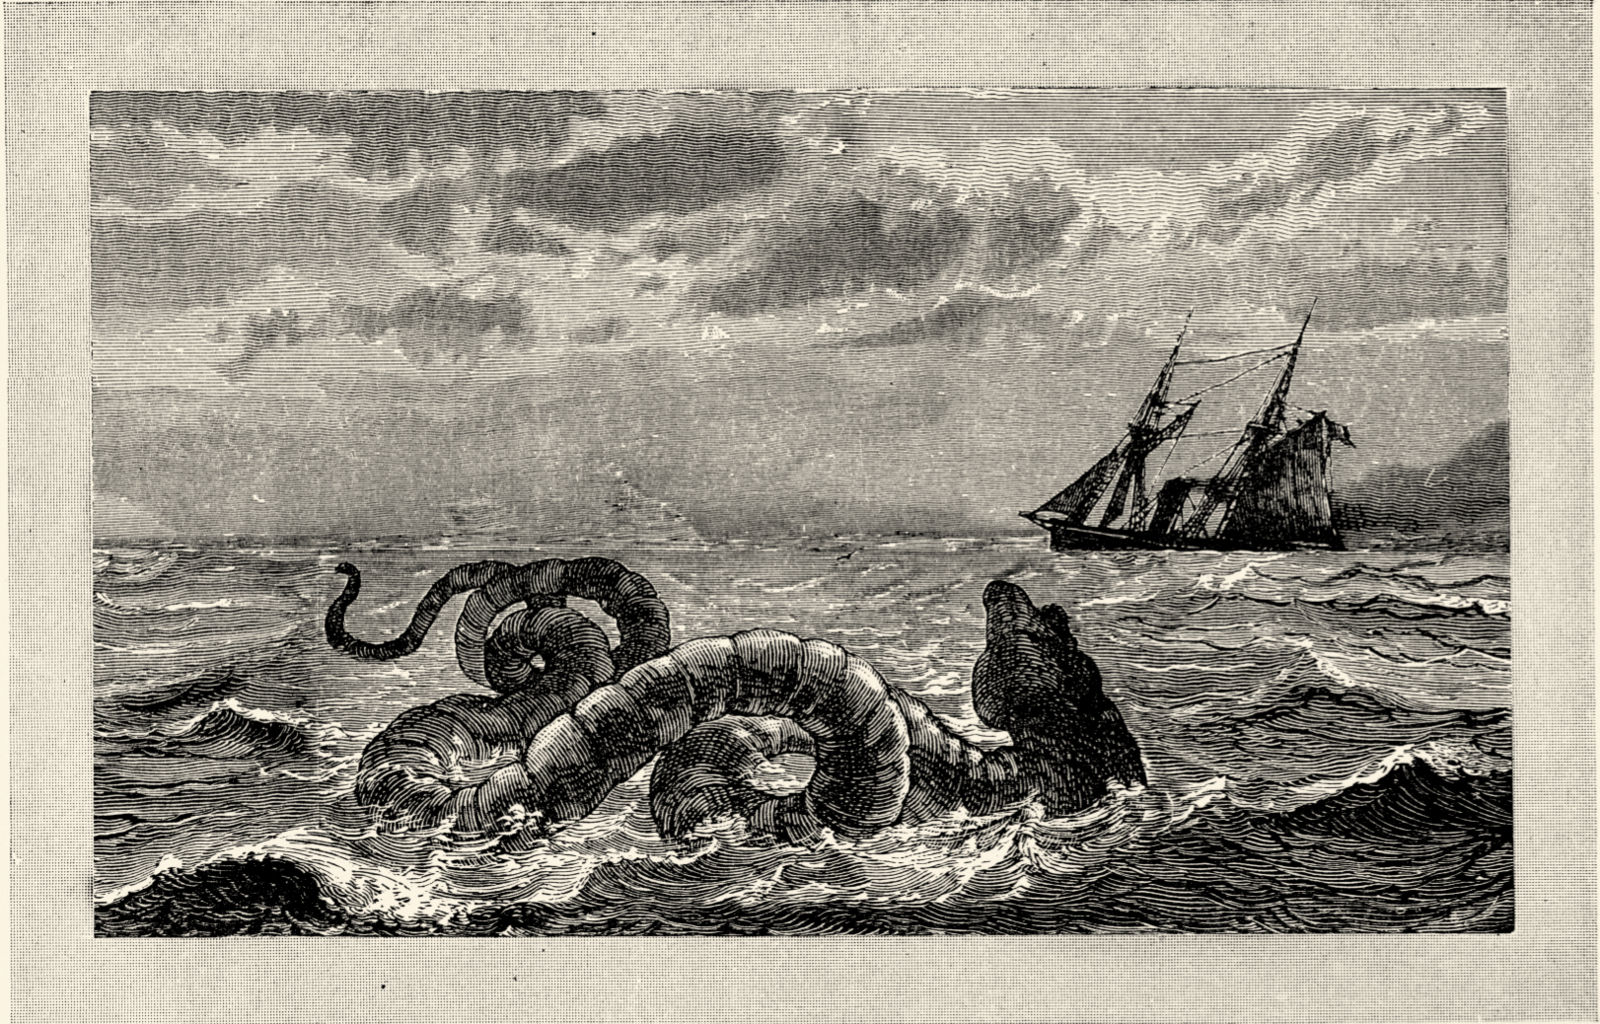 For over twenty minutes, the crew of the HMS Daedalus, a Royal Navy warship, watched what they claim to be a giant, 100-foot-long snake with a dragon's head swim near their boat. Don't trust the Daedalus crew? It was spotted a second time by the American brig Daphne, who even shot at the creature and tried to follow it, only to lose it at sea. Scientists today think they most likely saw a whale, but wouldn't a bunch of experienced sailors know the difference between a whale and a serpent?